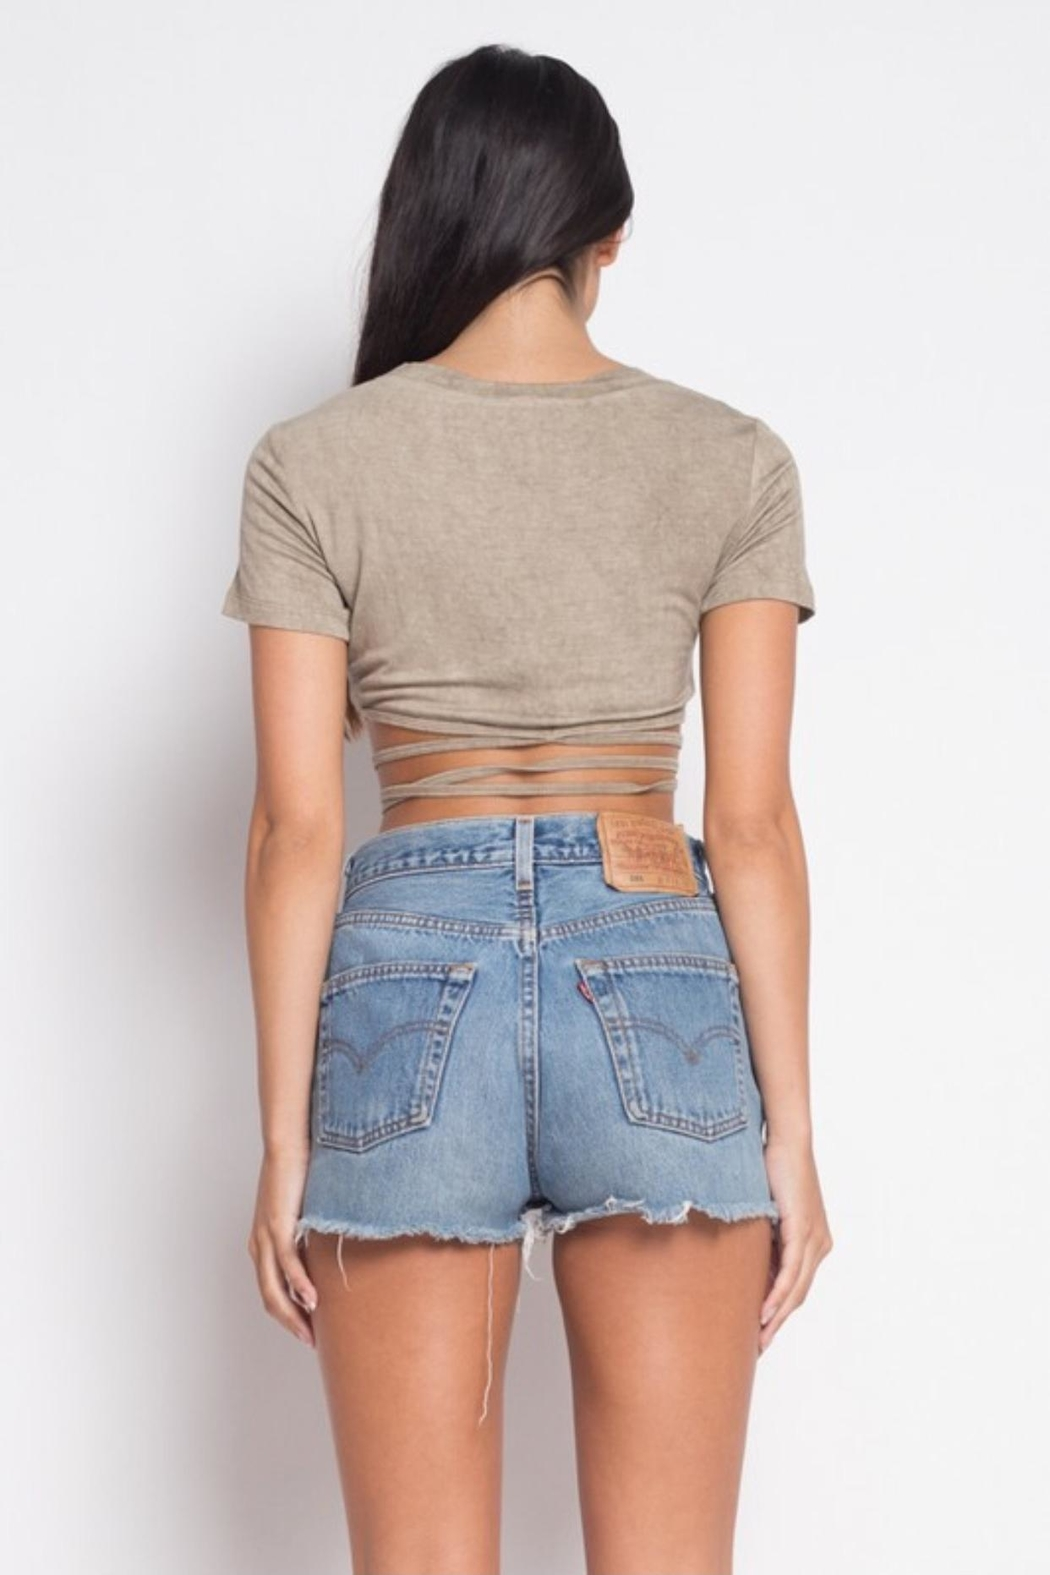 etophe Wrap Crop Top - Front Full Image